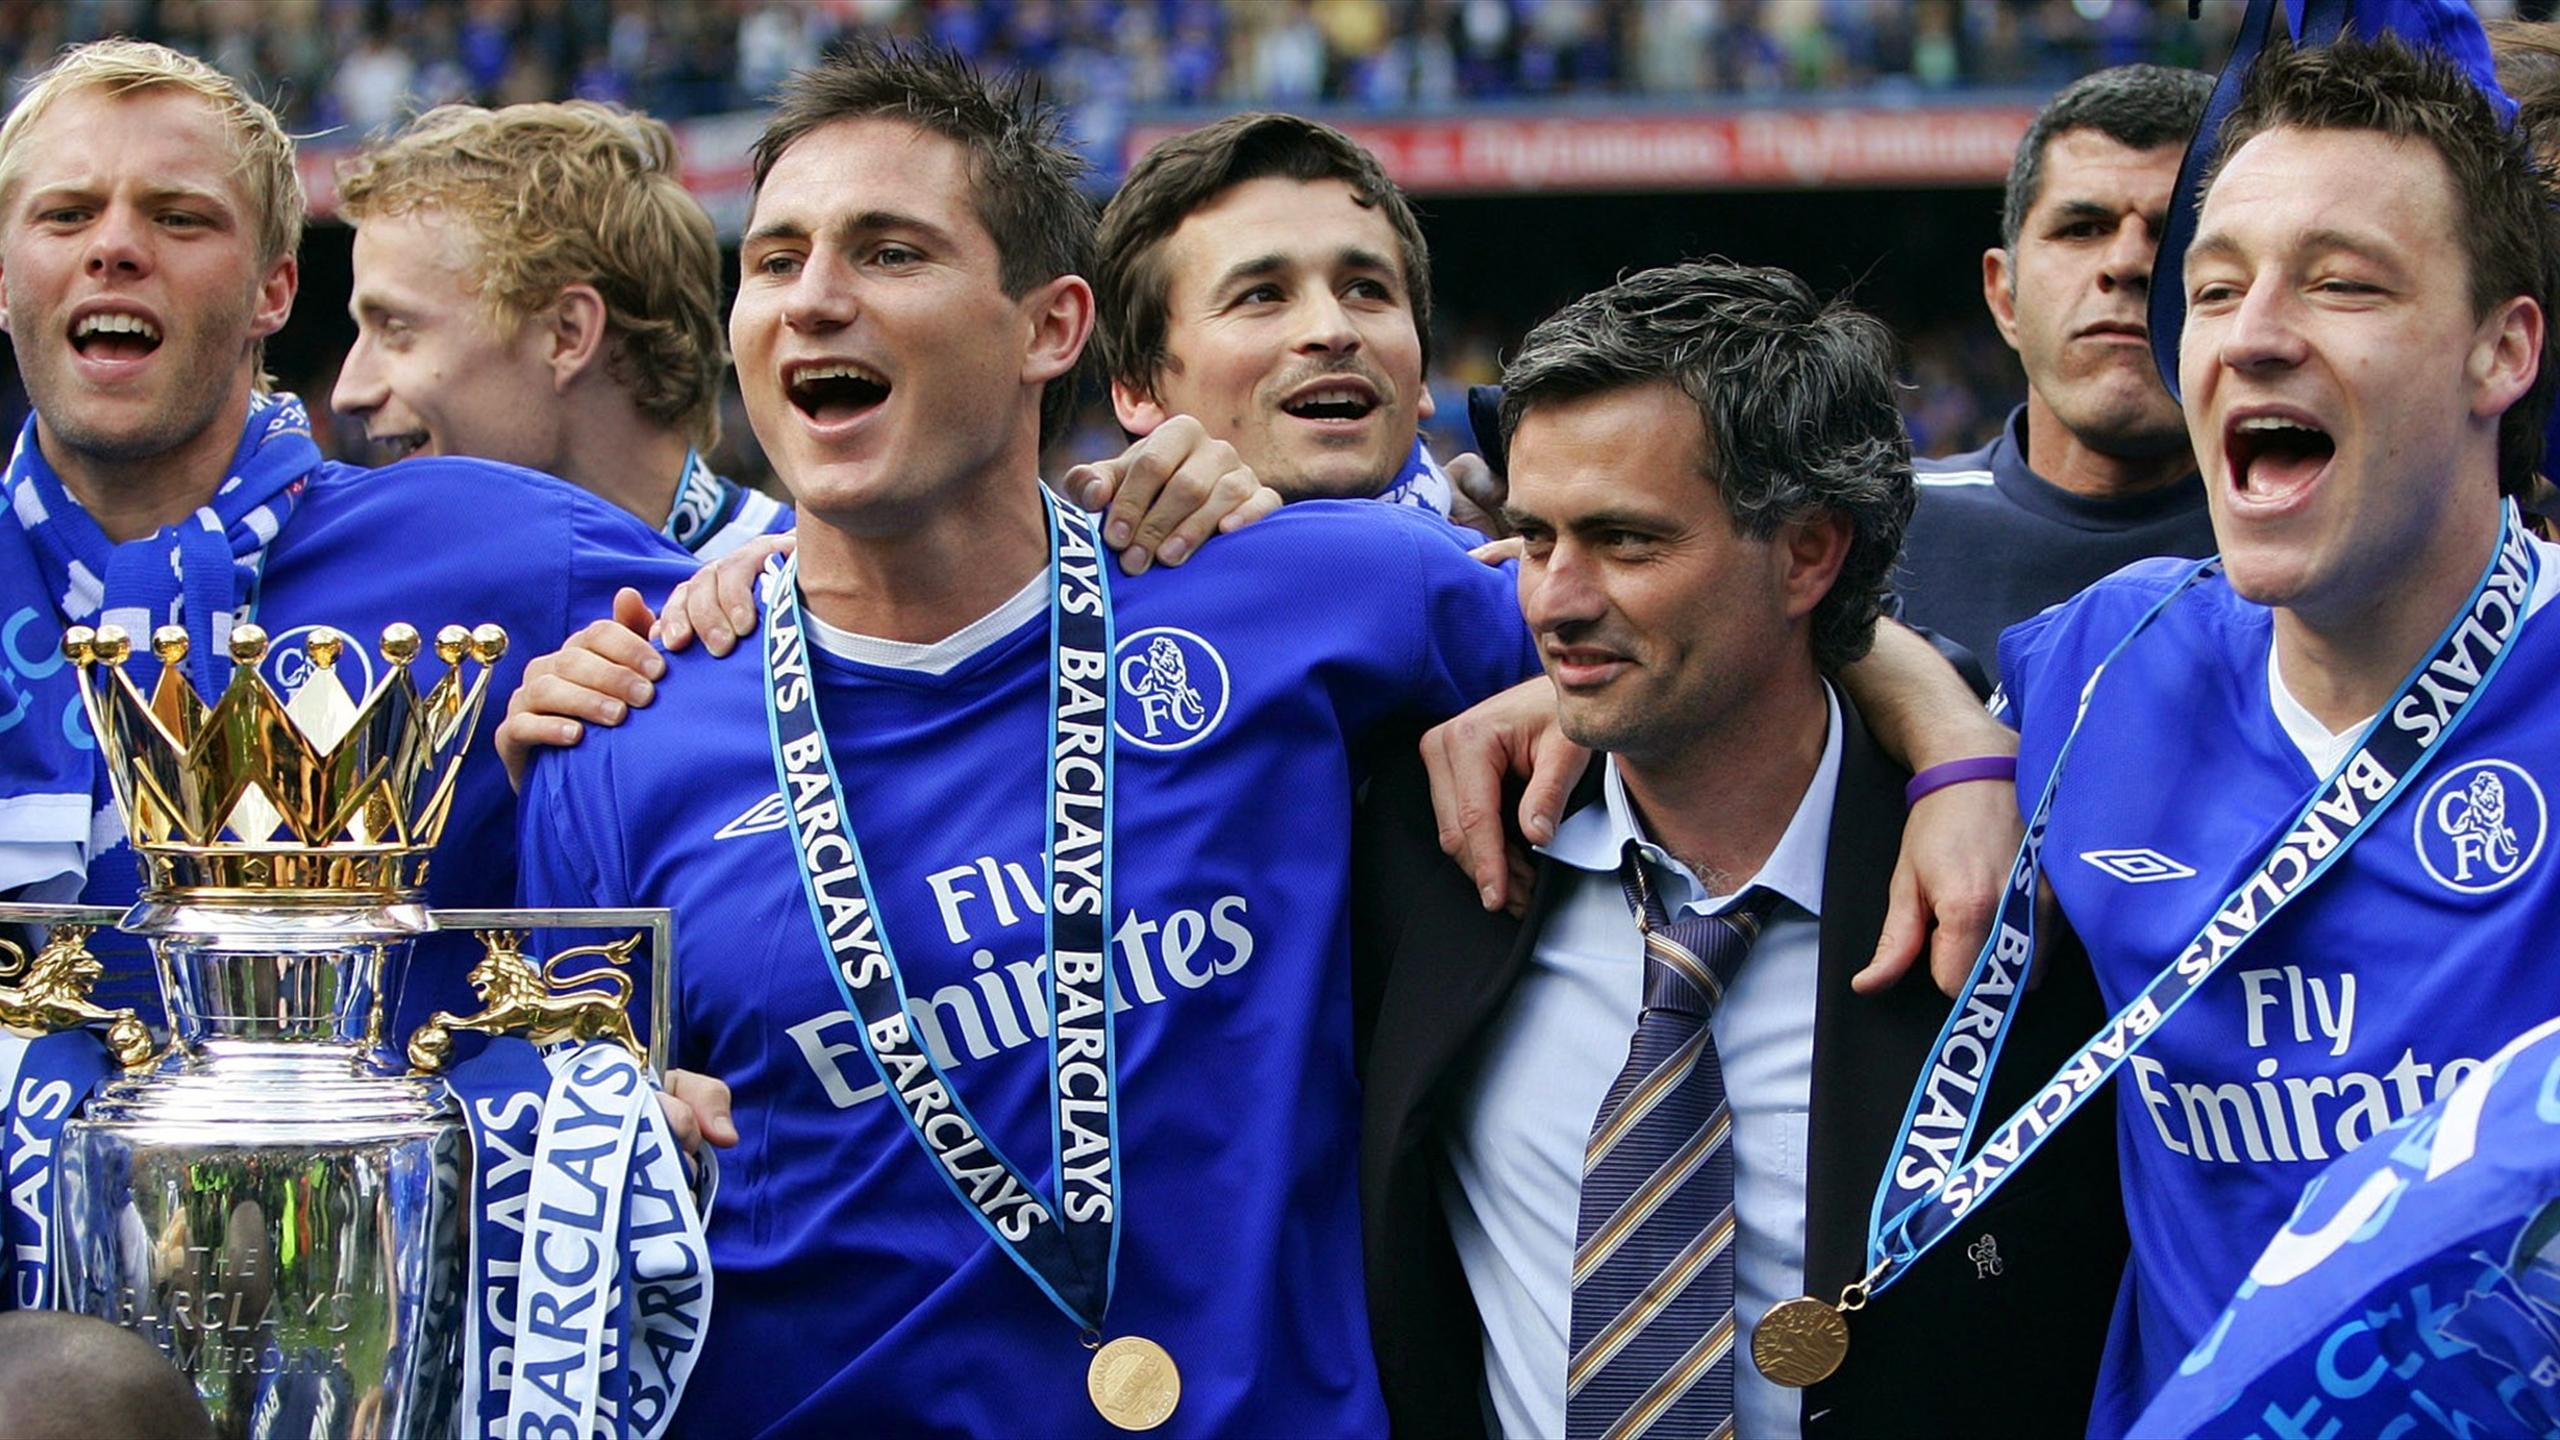 Chelsea manager Mourinho lifts the English Premier League soccer trophy with Gudjohnson, Lampard and Terry at Stamford Bridge